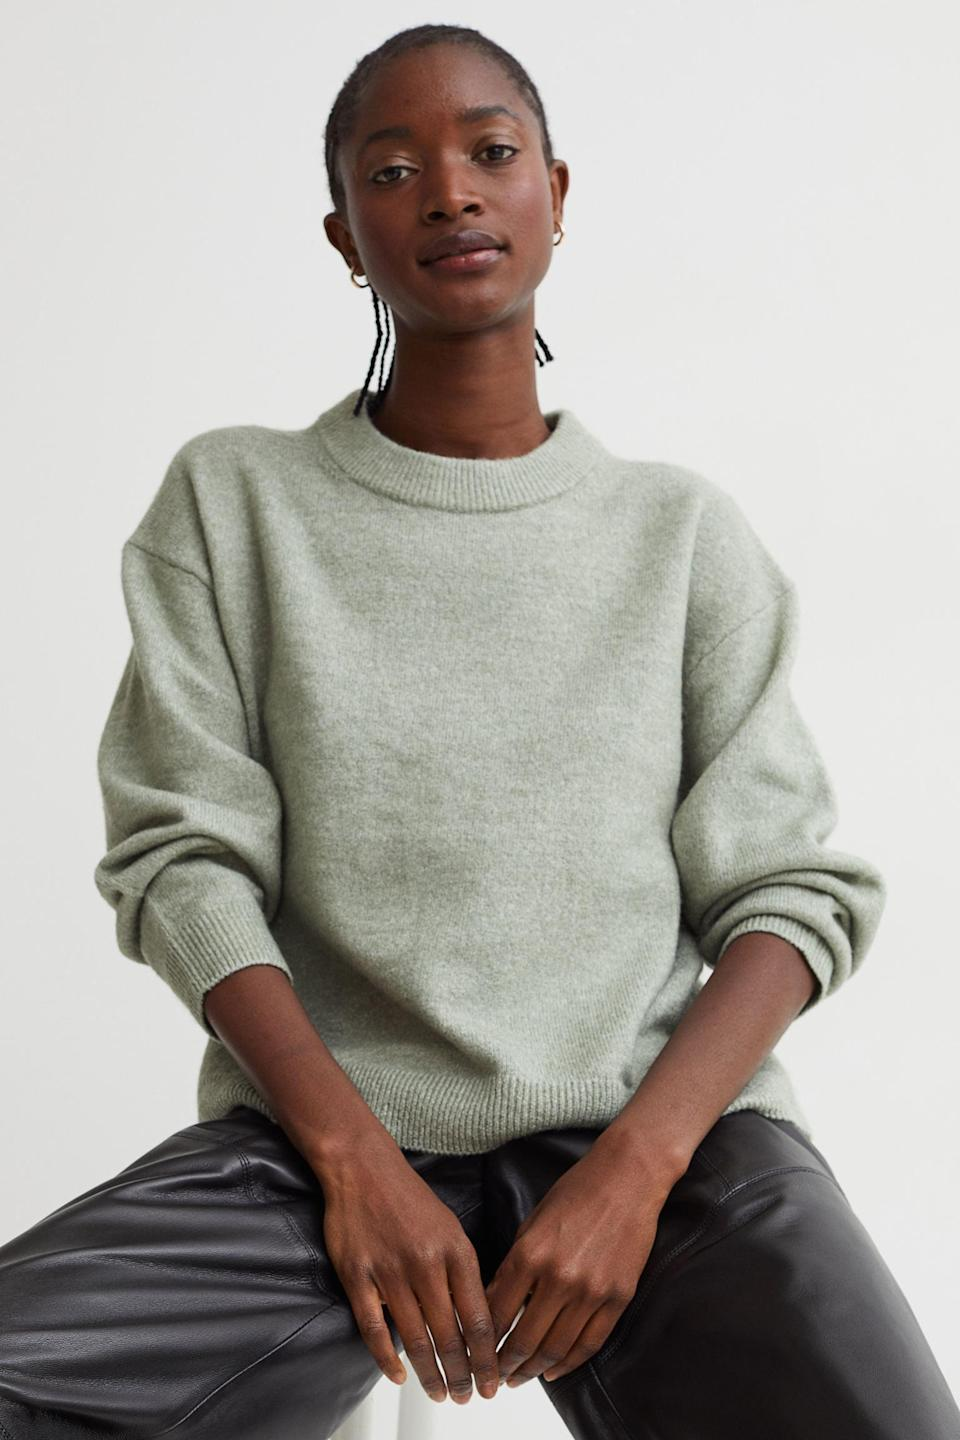 <p>We bet this <span>Knit Sweater</span> ($16, originally $20) feels soft and comfortable, so don't be surprised if you find yourself falling asleep in it. We love the soft hue and simple silhouette.</p>